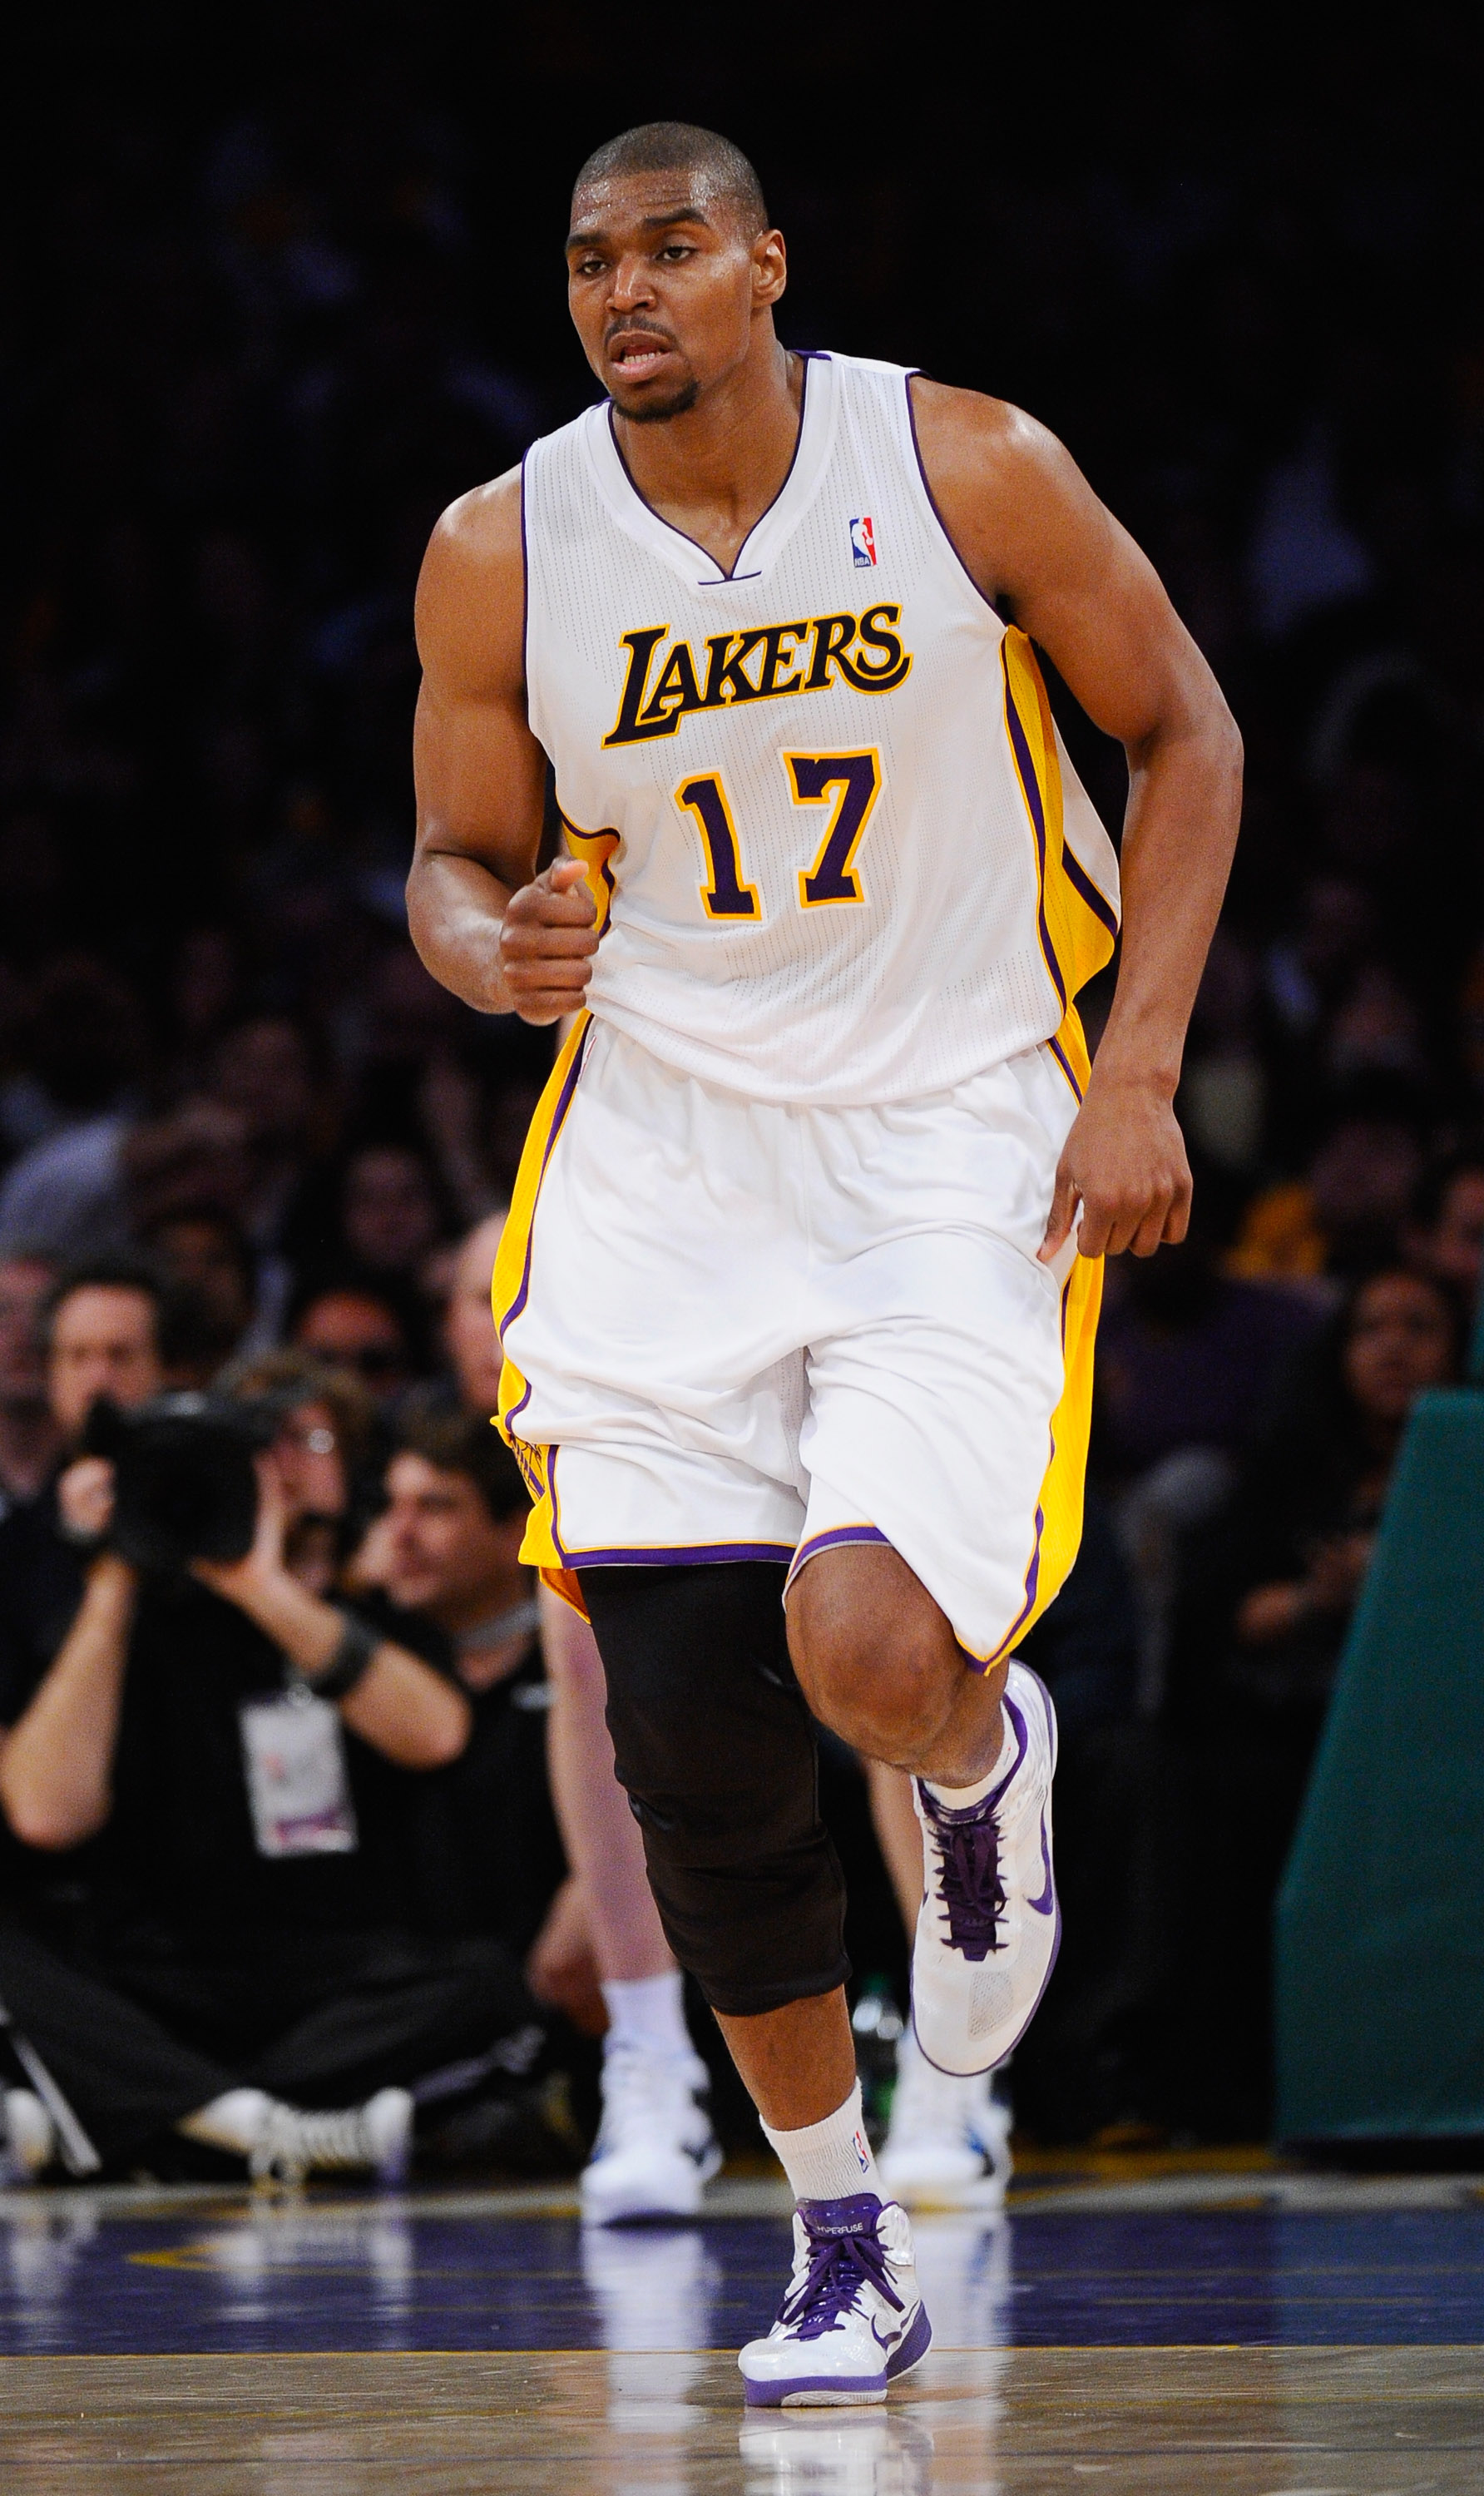 LOS ANGELES, CA - APRIL 03:  Andrew Bynum #17 of the  Los Angeles Lakers against the Denver Nuggets at Staples Center on April 3, 2011 in Los Angeles, California. NOTE TO USER: User expressly acknowledges and agrees that, by downloading and or using this